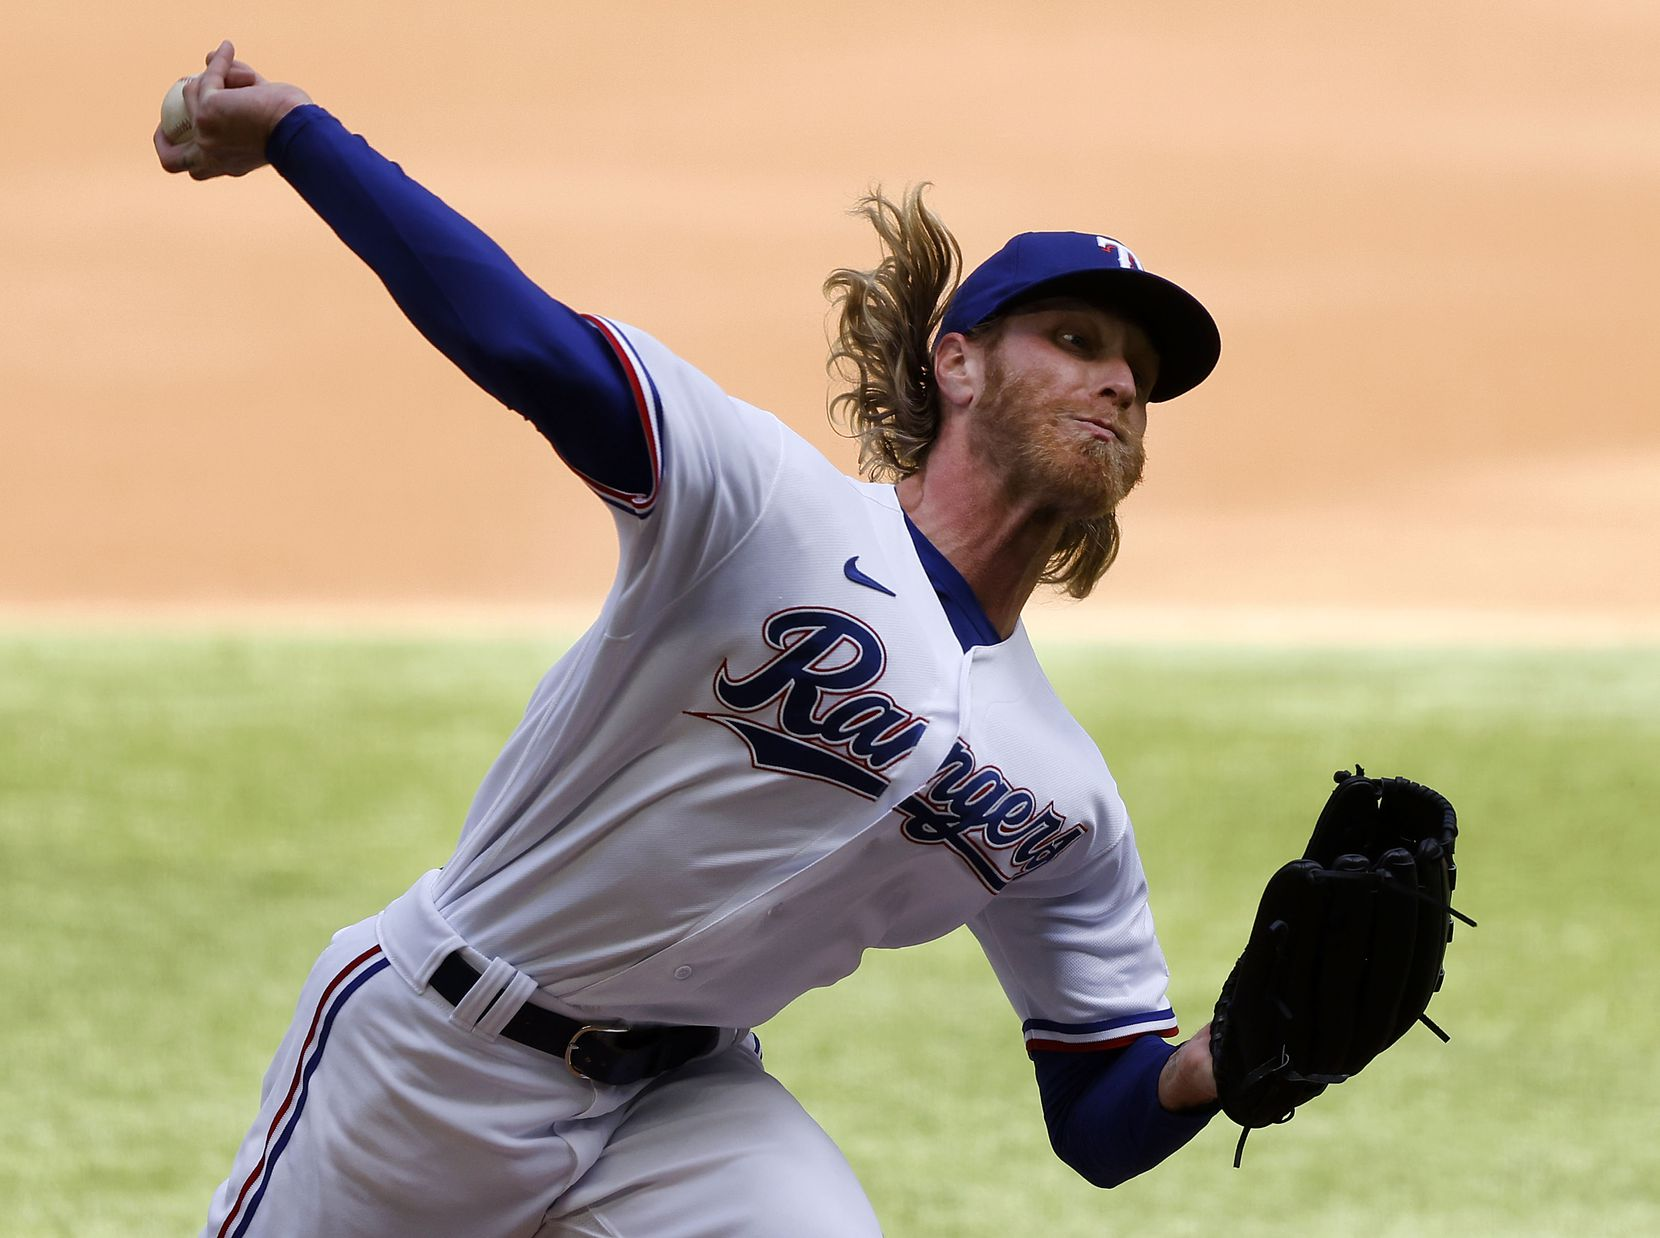 Texas Rangers starting pitcher Mike Foltynewicz (20) throws against the Toronto Blue Jays in the first inning at Globe Life Field in Arlington, Monday, April 5, 2021. The Texas Rangers were facing the Toronto Blue Jays in their home opener. (Tom Fox/The Dallas Morning News)